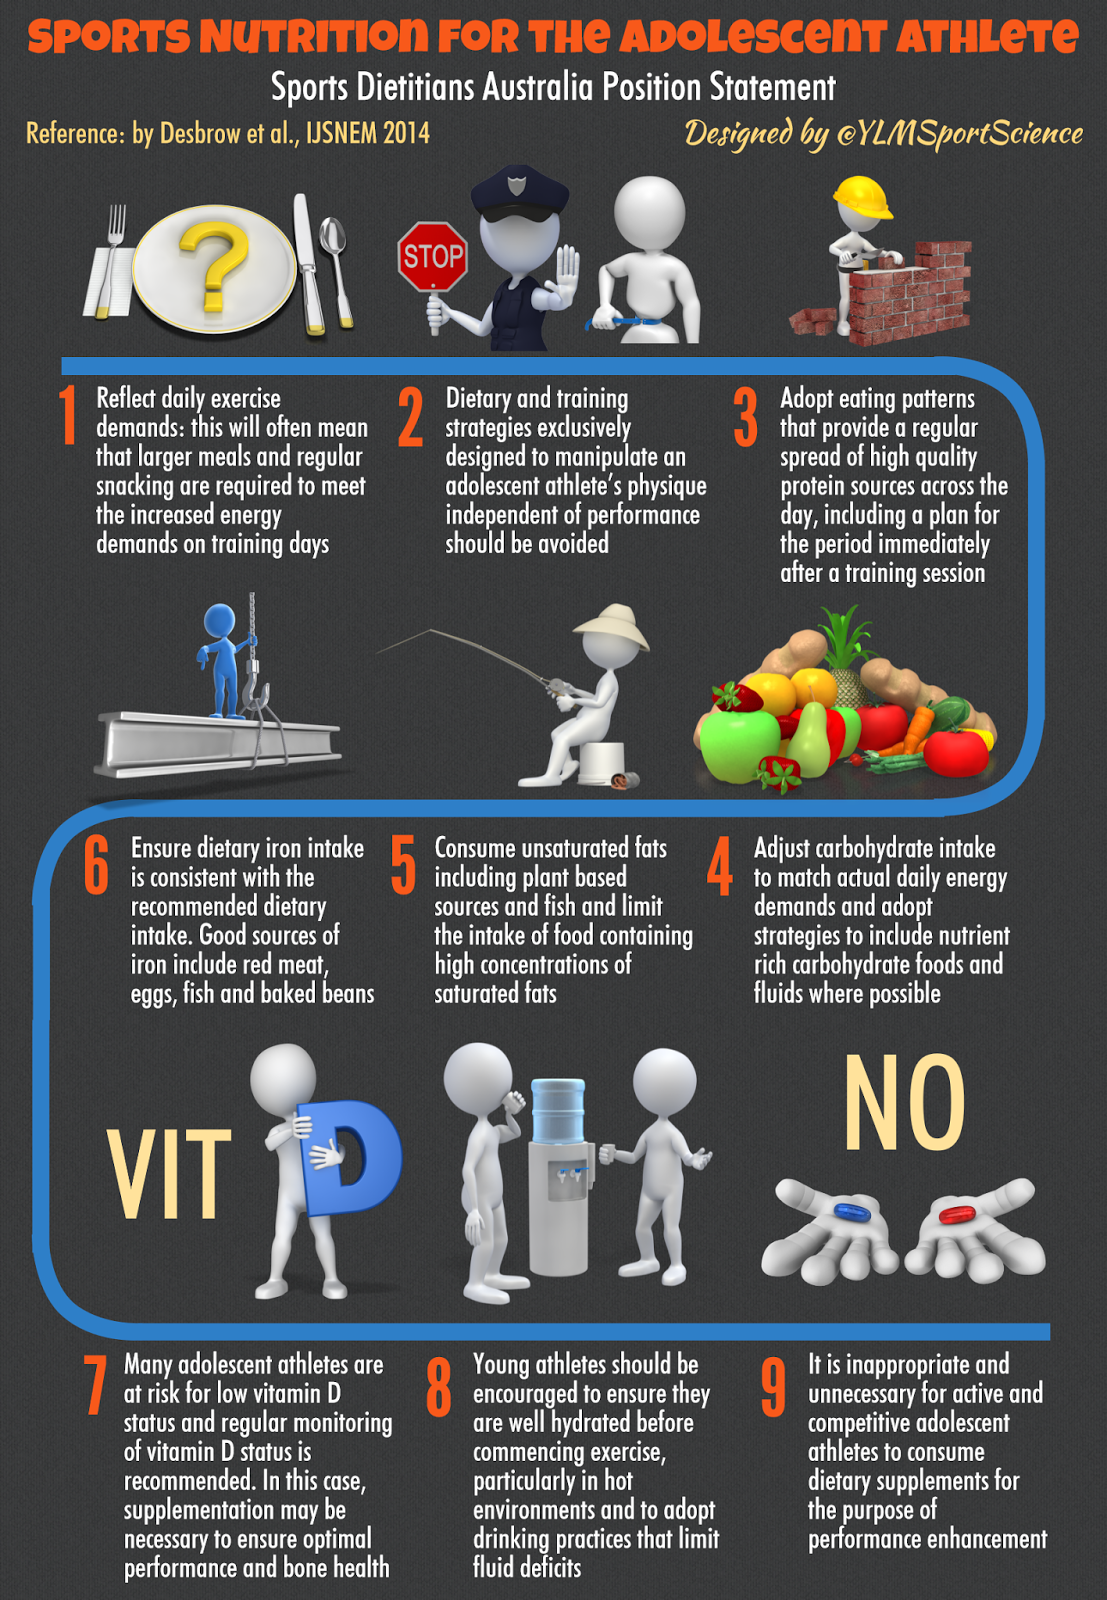 #Basics | Sports Nutrition for the Adolescent Athlete | By @YLMSportScience #athletenutrition